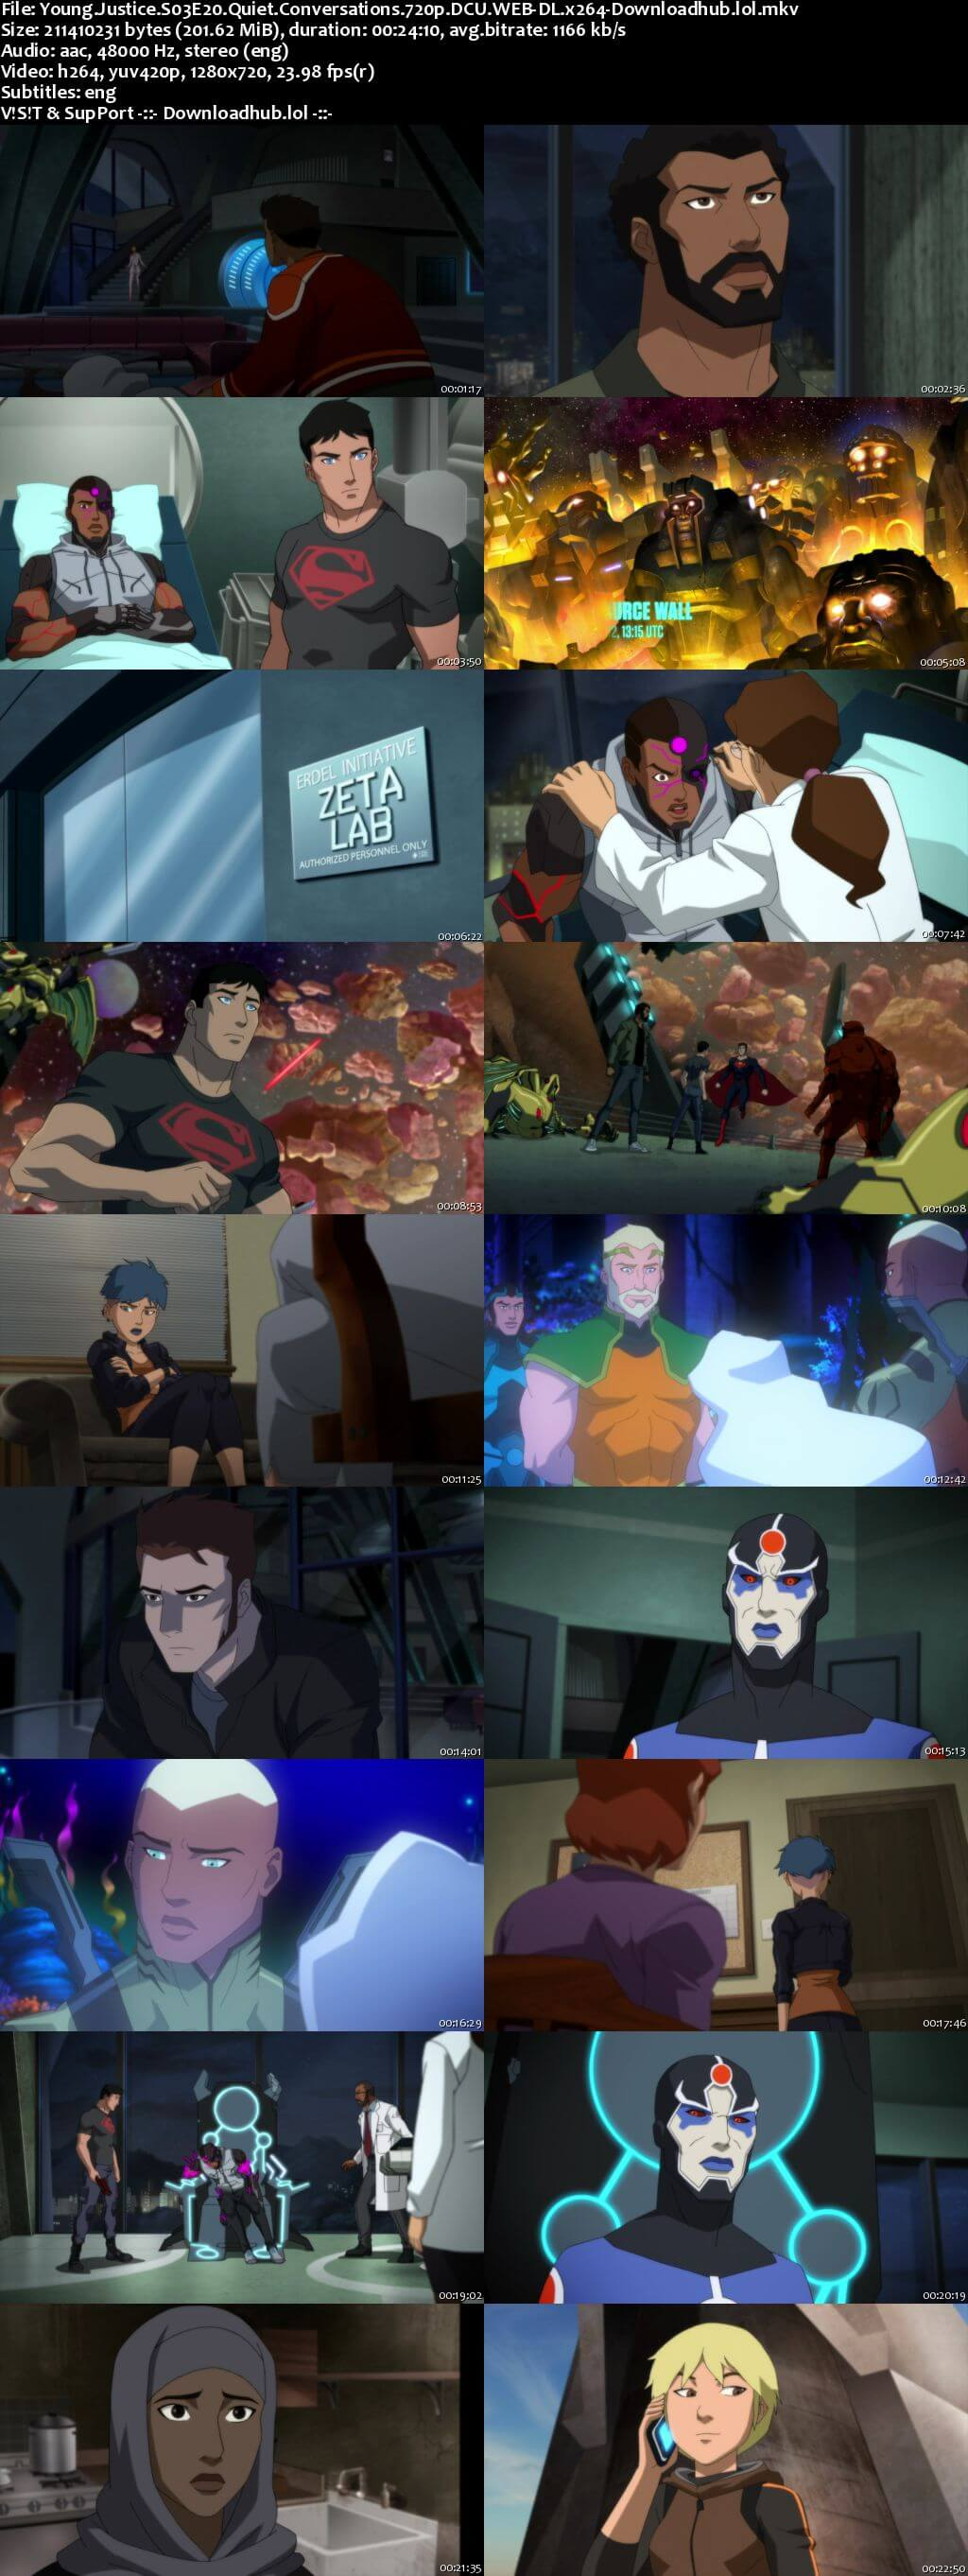 Young Justice S03E20 200MB DCU WEB-DL 720p ESubs